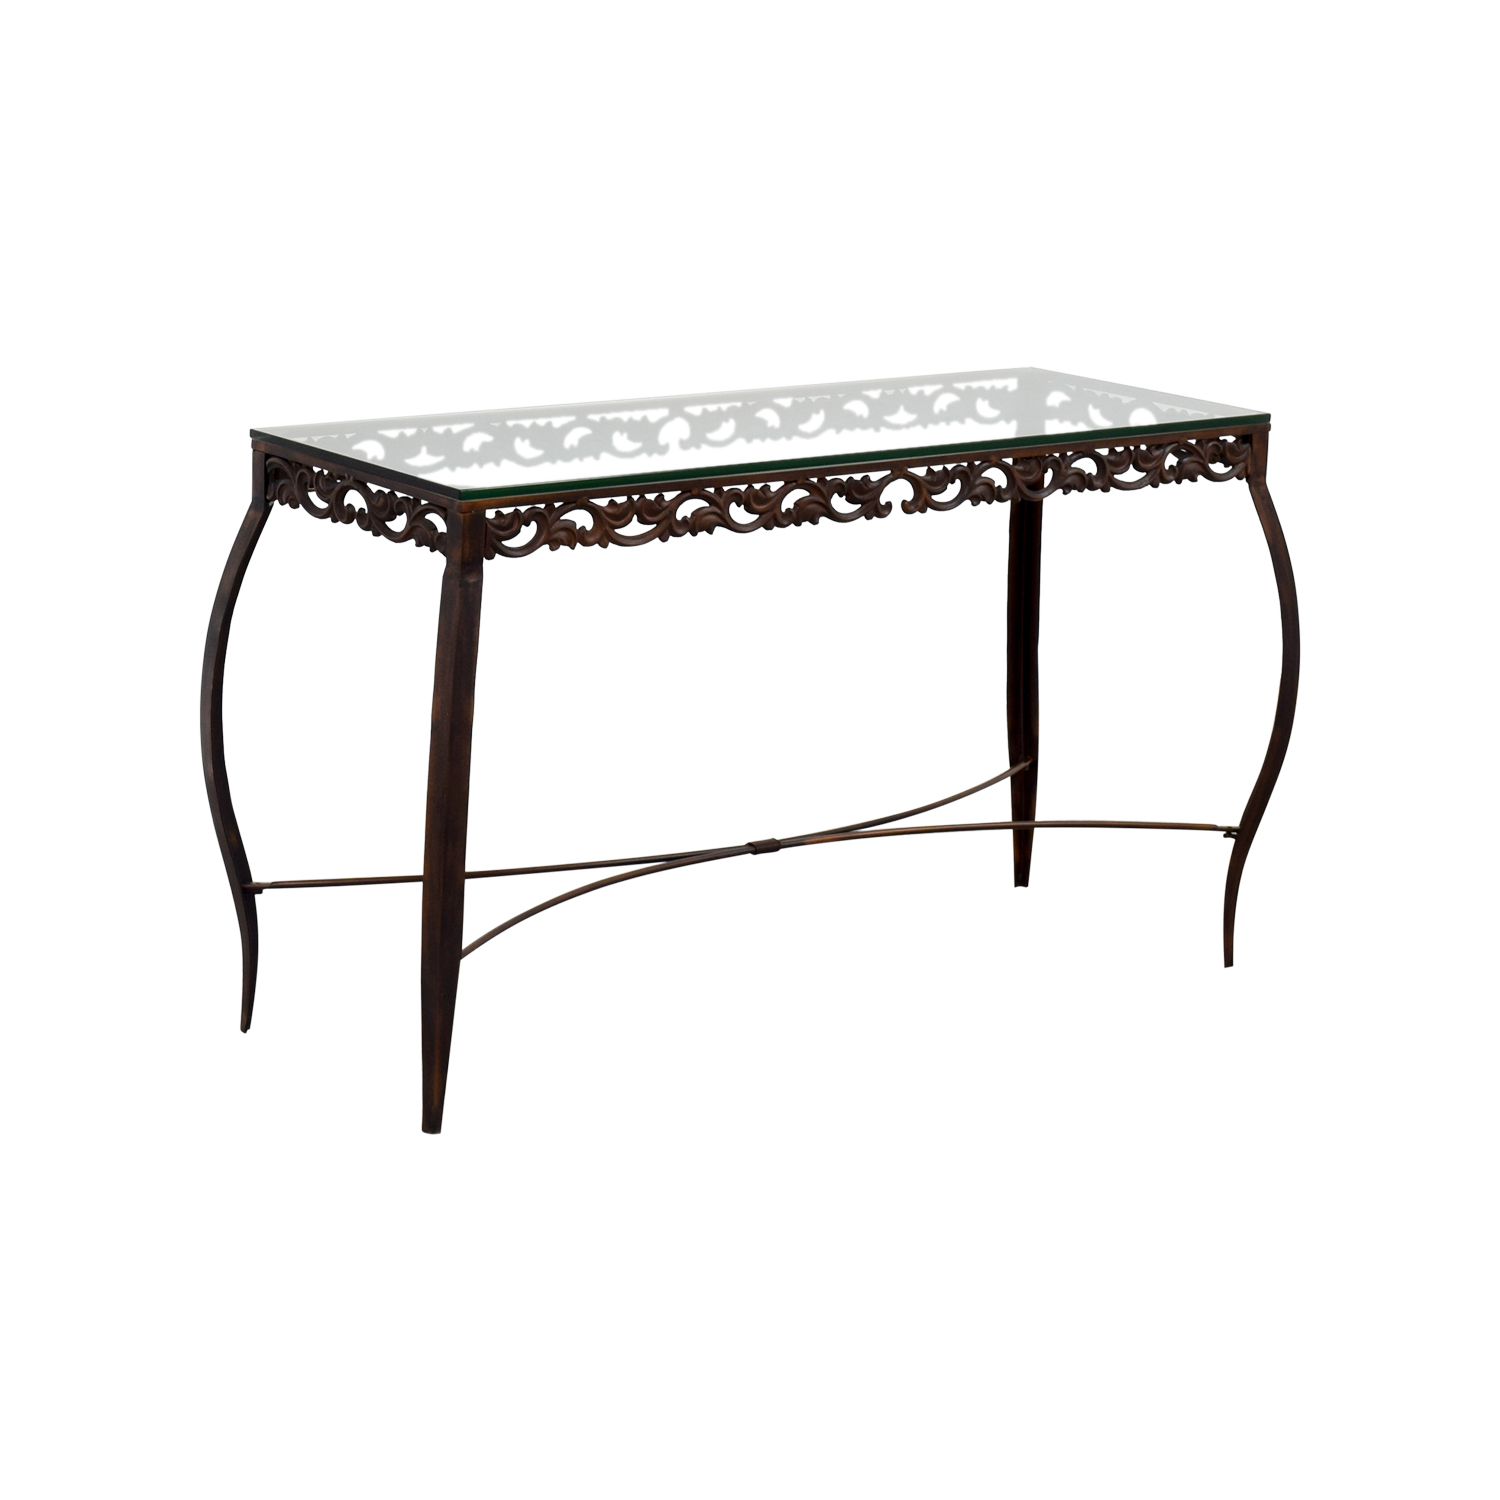 90 off pier 1 imports pier 1 imports glass console for Sofa table pier one